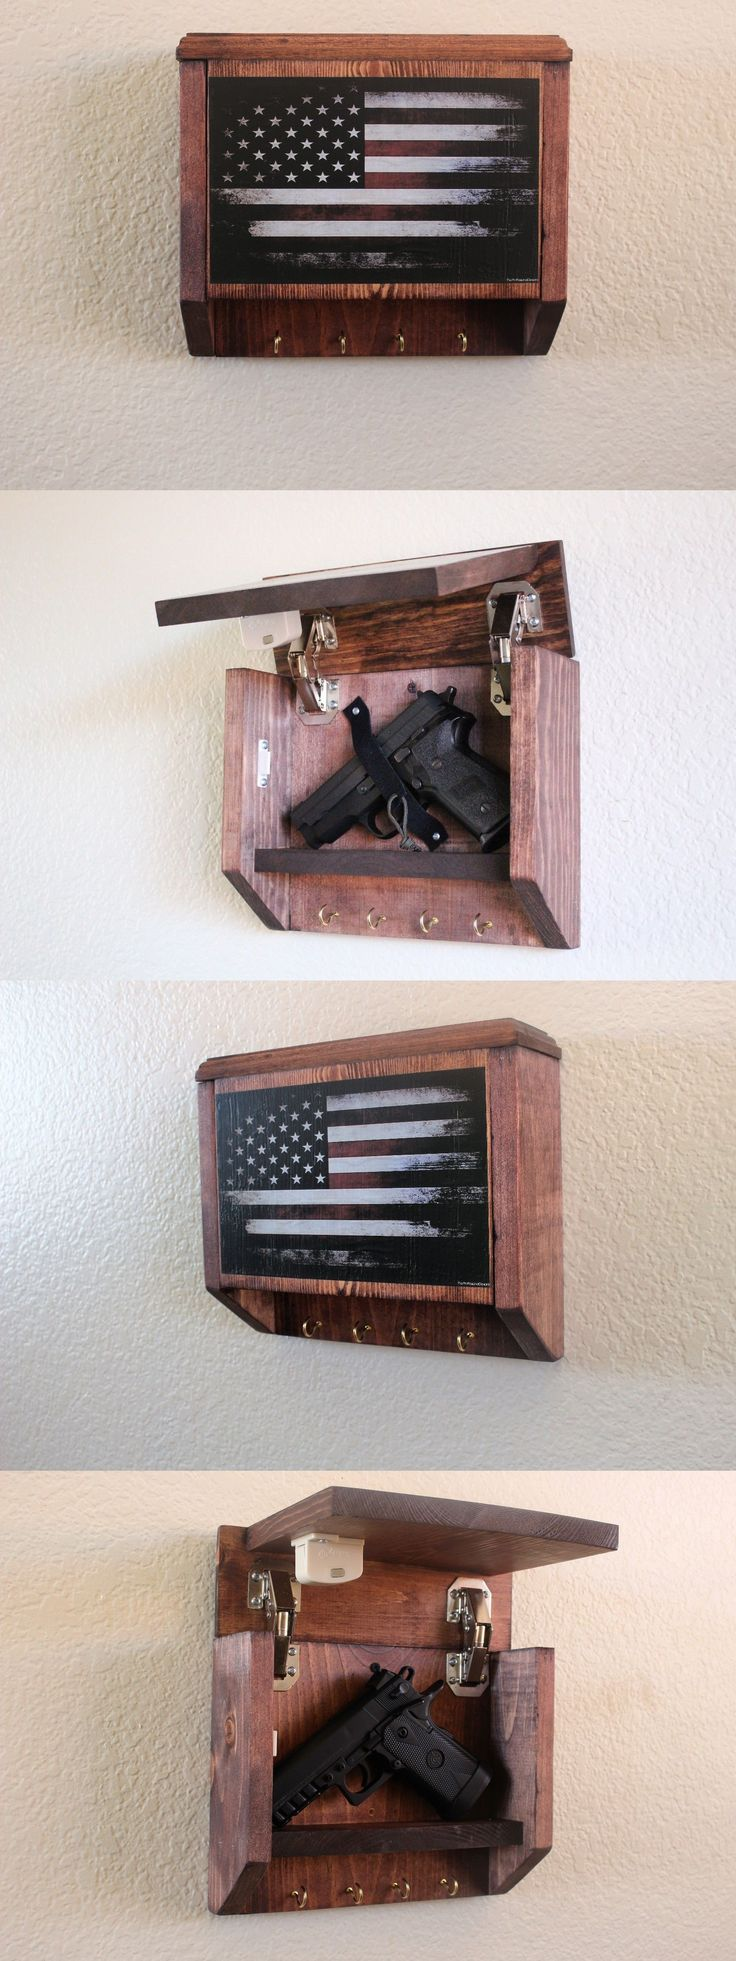 22 best diy images on pinterest computers craft and for Bedroom furniture gun safe